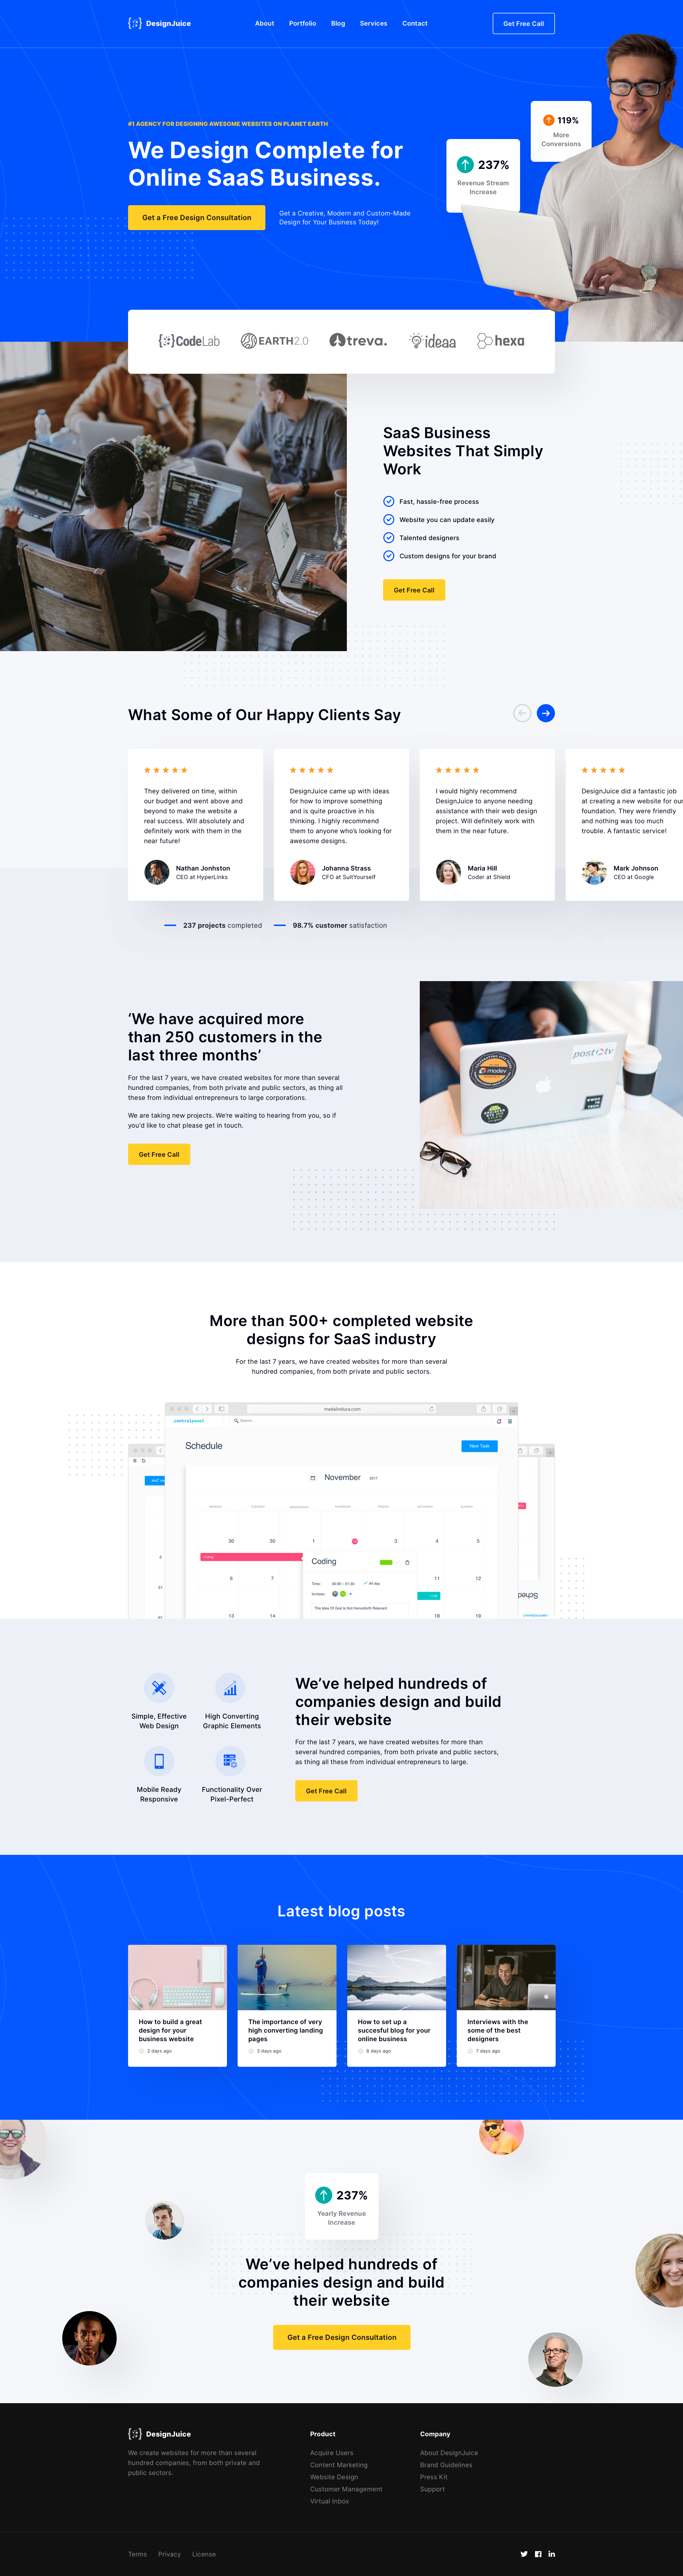 SaaS Business - Free Landing Page for Sketch - Elegant and clean landing page design for your agency.